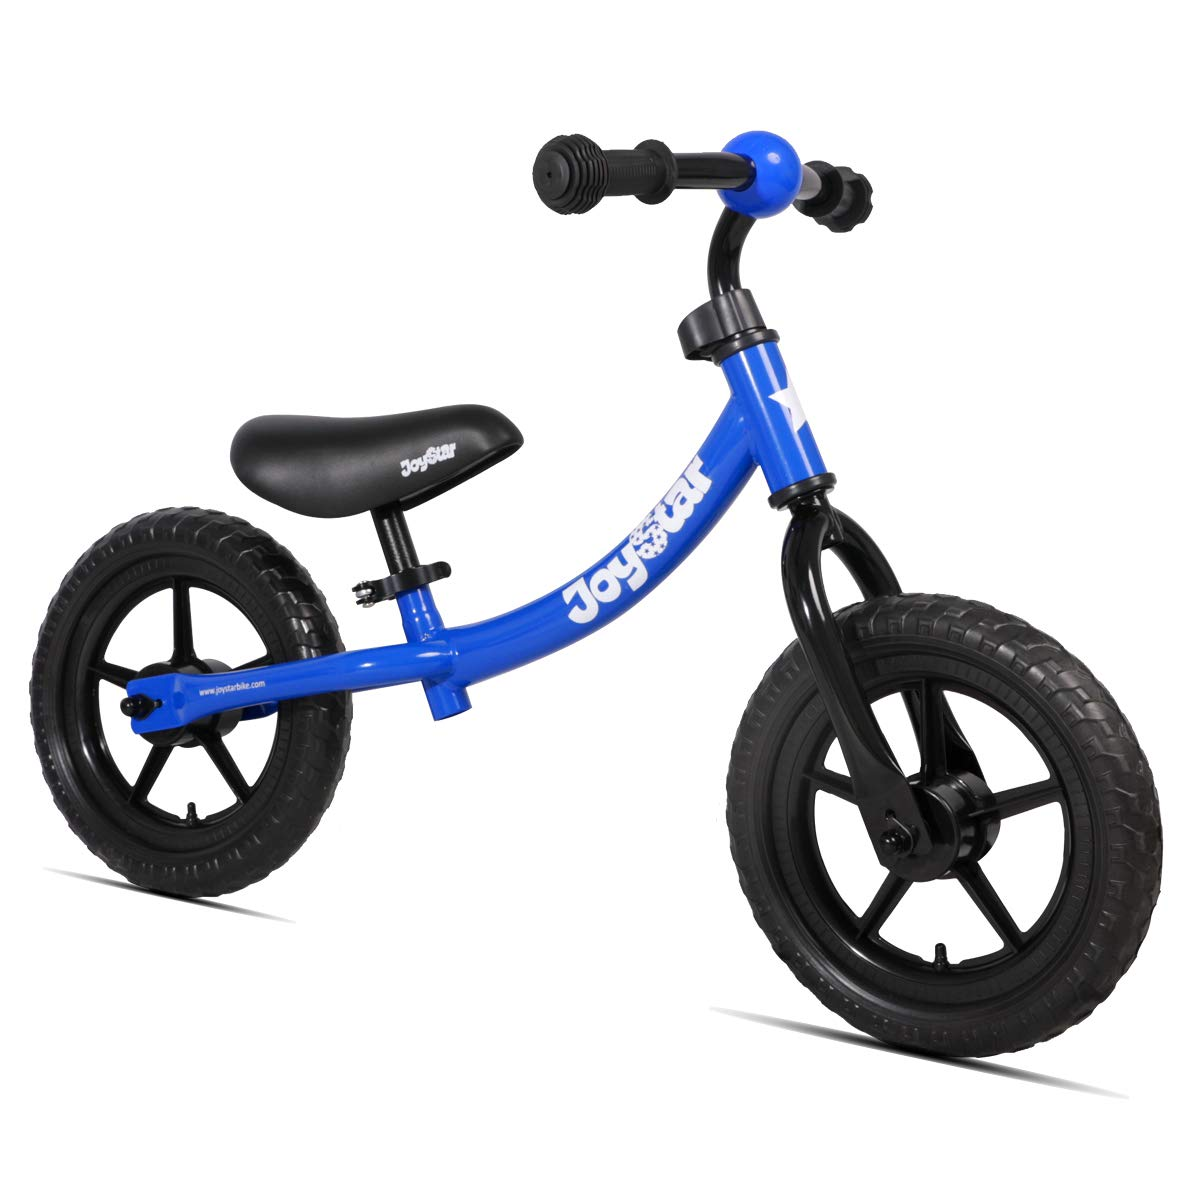 Top 11 Best Balance Bikes for Toddlers (2019 Reviews) 10